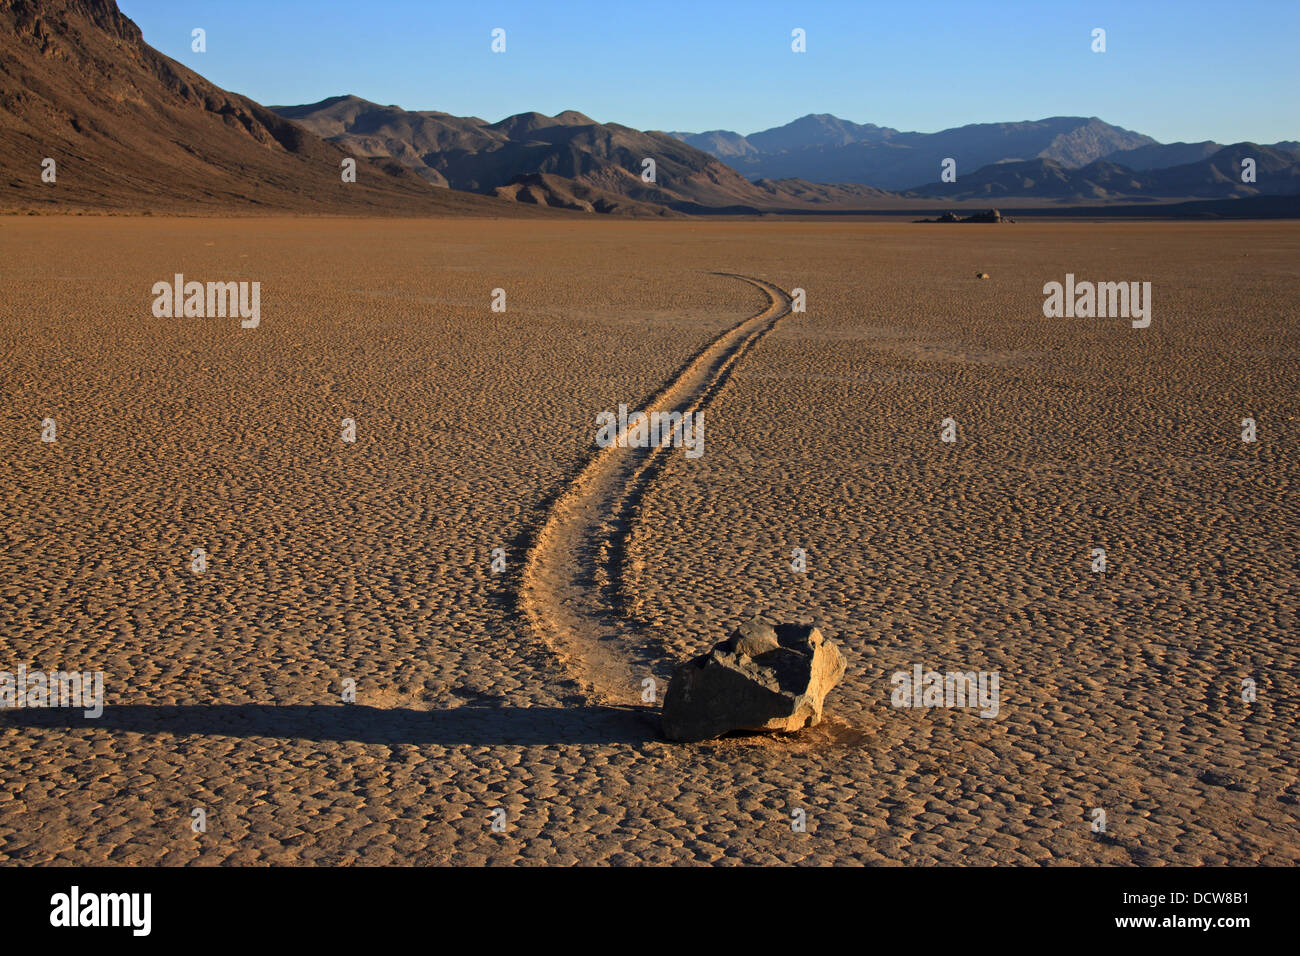 Sailing stones in Death Valley National Park - Stock Image